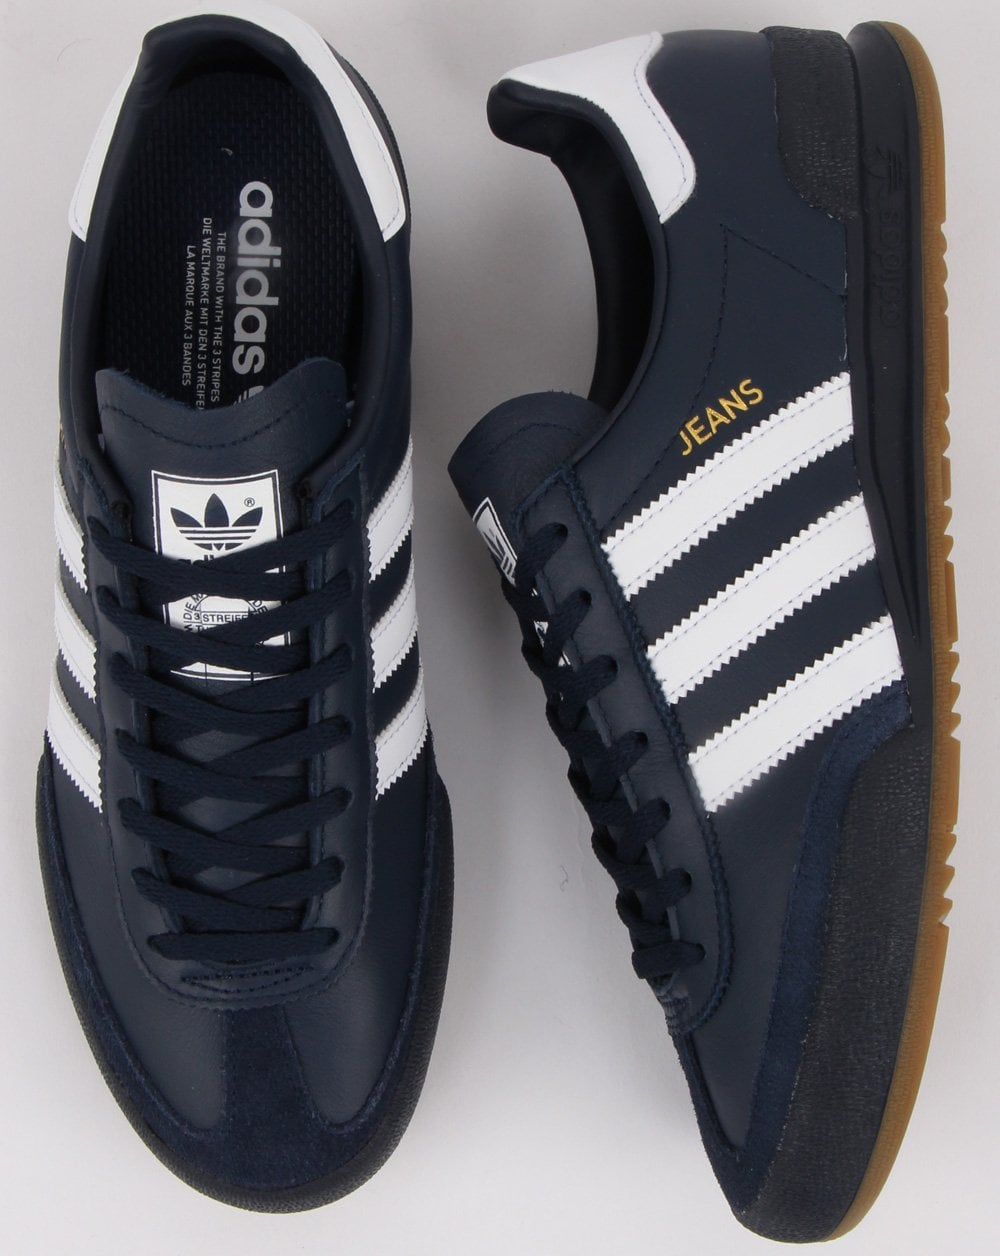 Adidas Jeans Trainers Navy, white